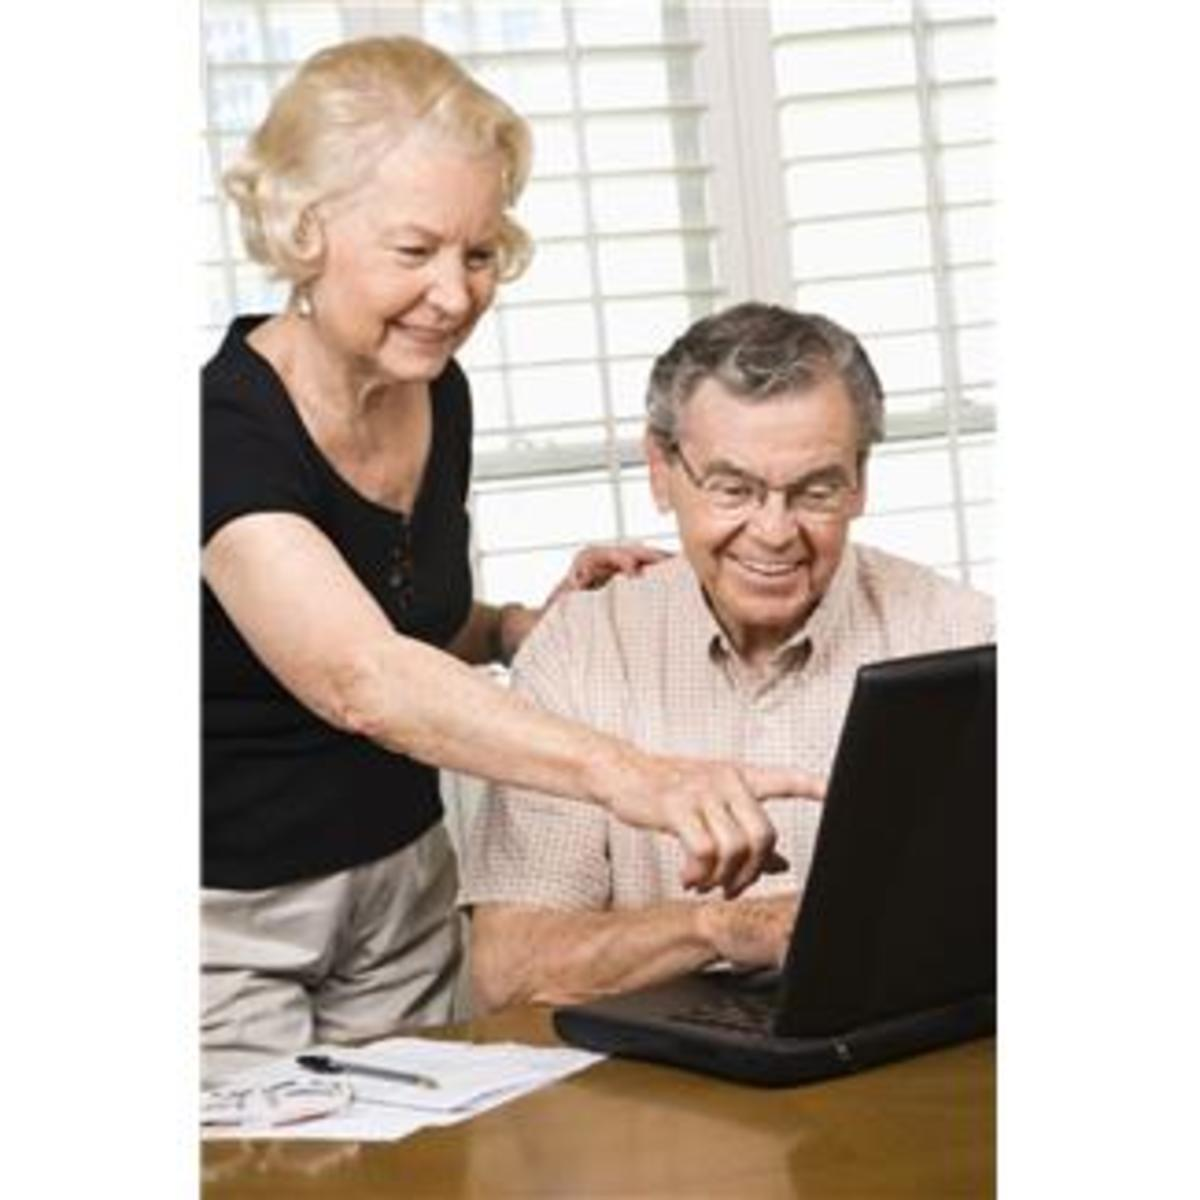 How to Make Money from Home to Supplement Your Retirement Income: 10 Tips